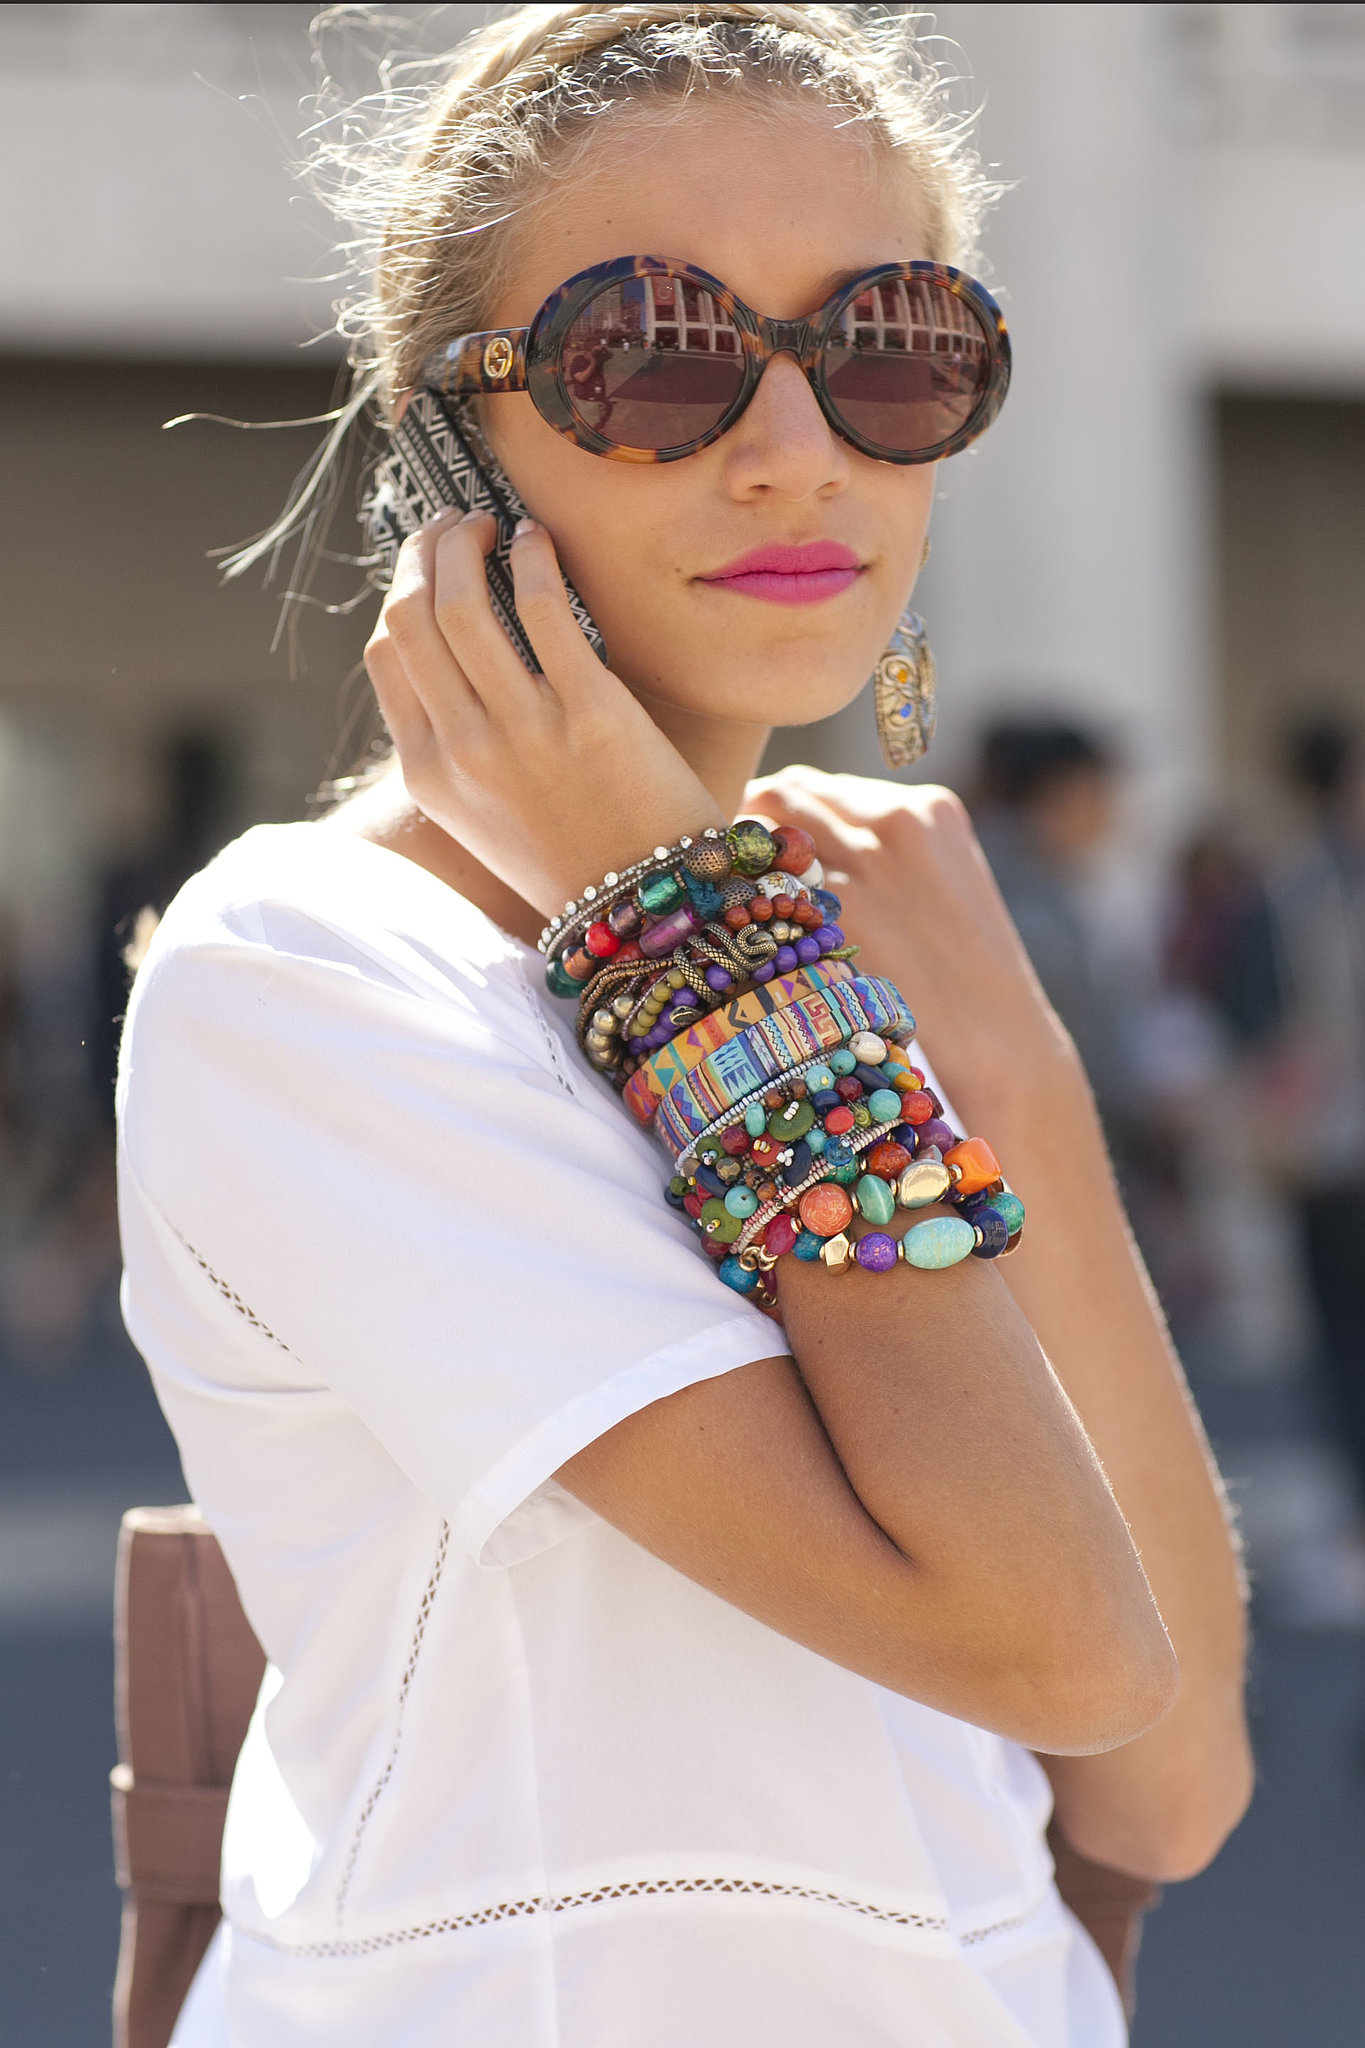 A rainbow-bright wrist and major shades.